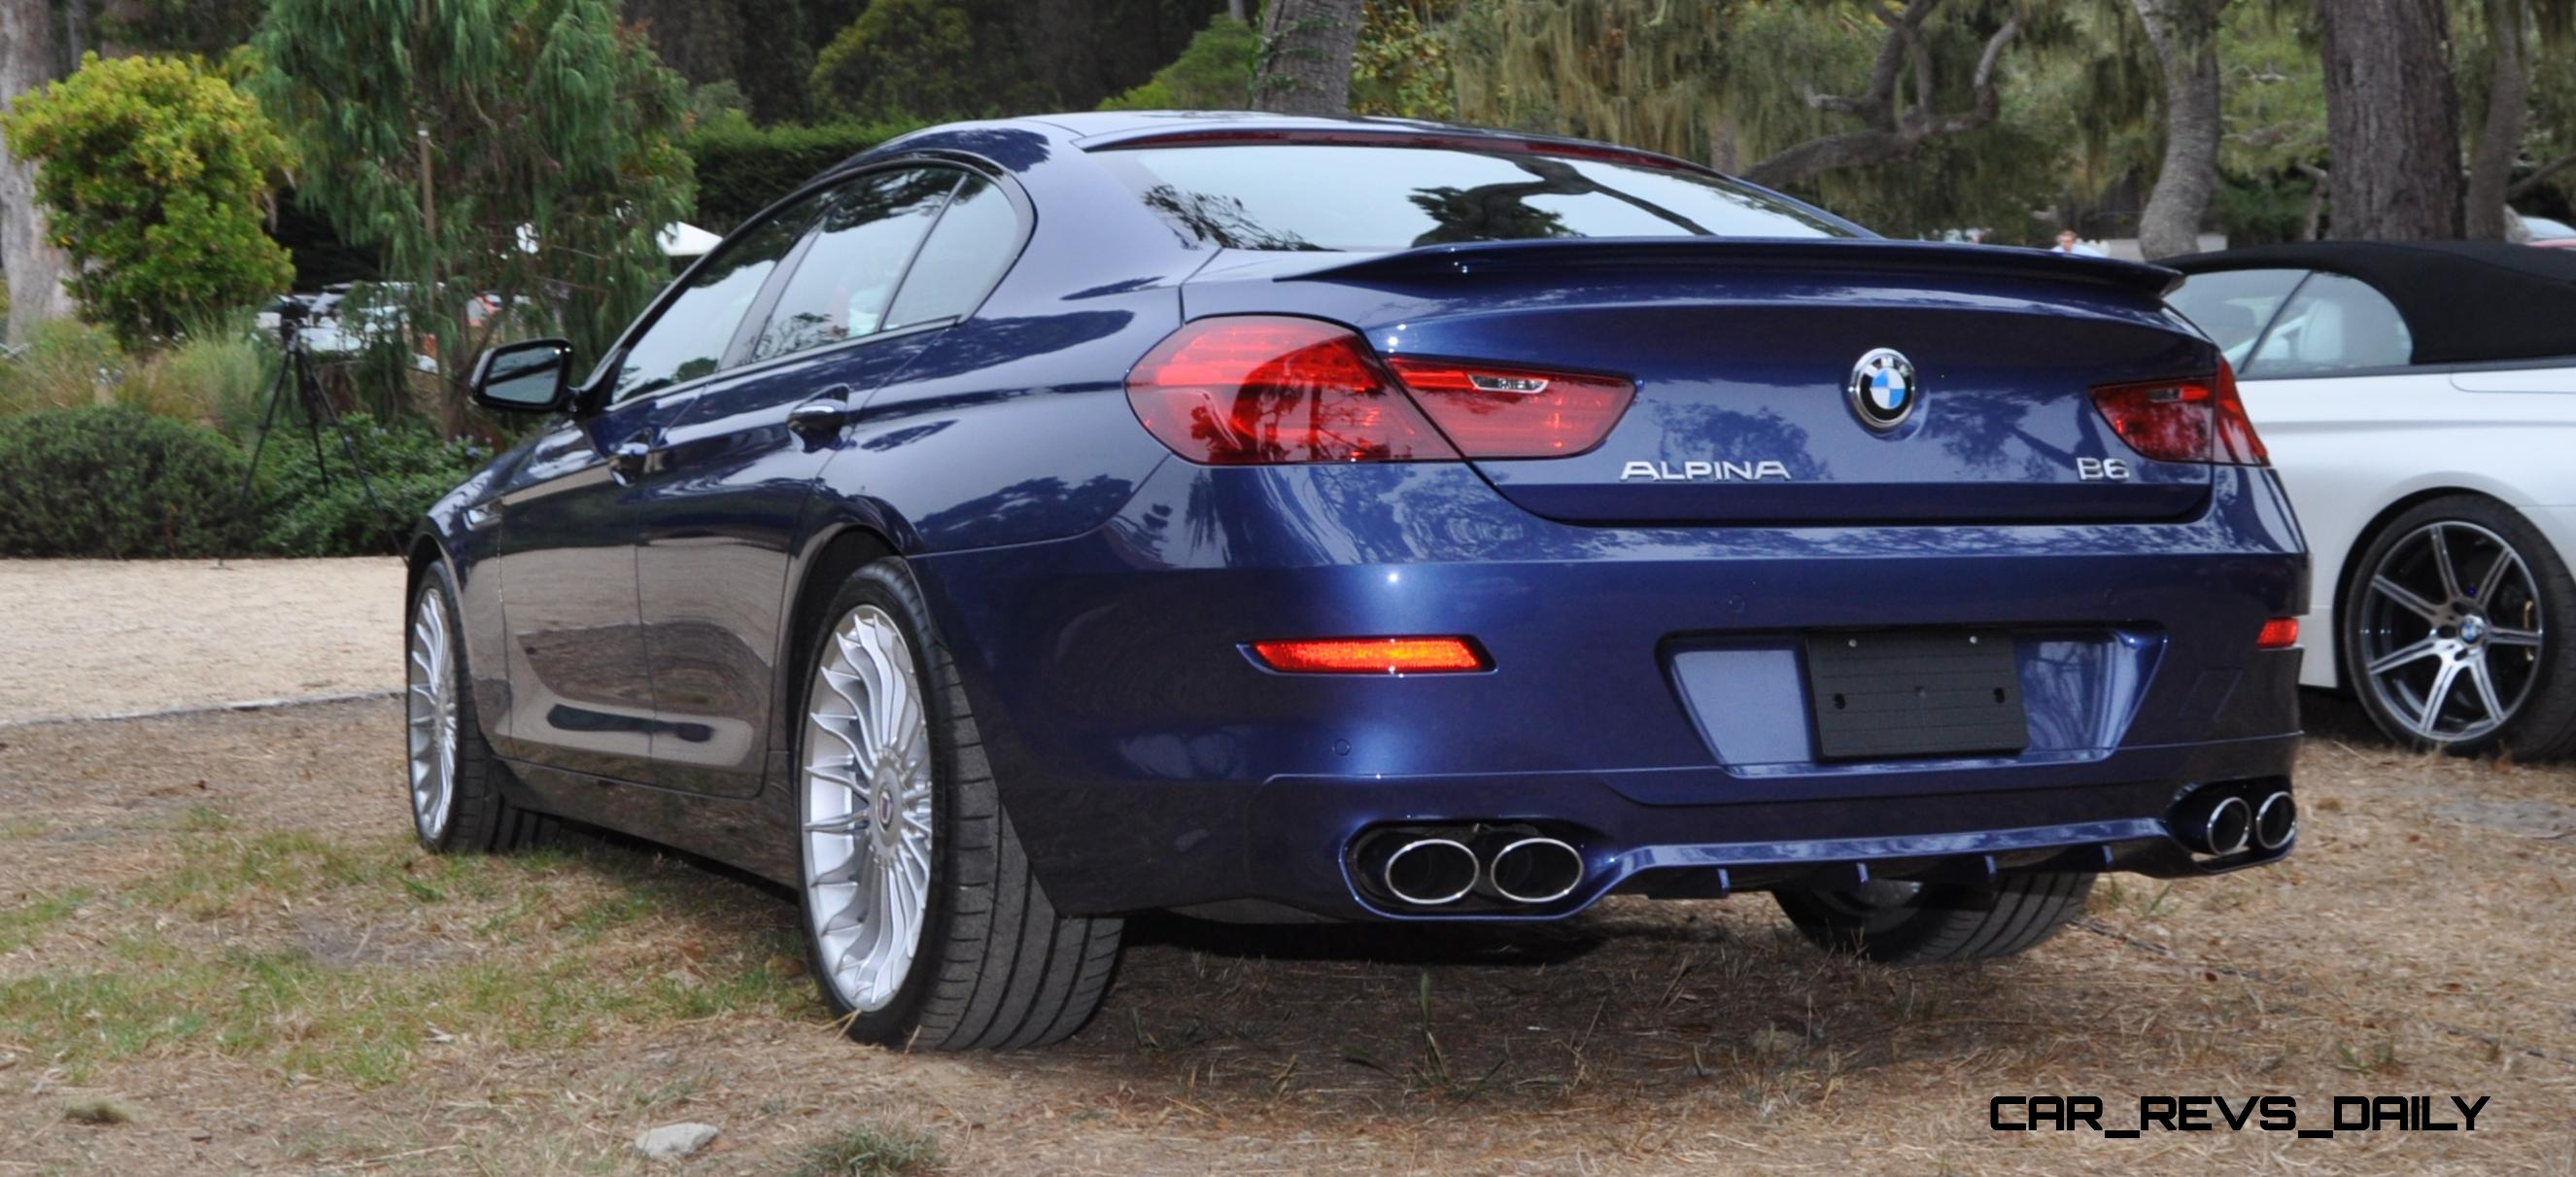 540hp, 3.7s 2015 bmw alpina b6 xdrive gran coupe is now available